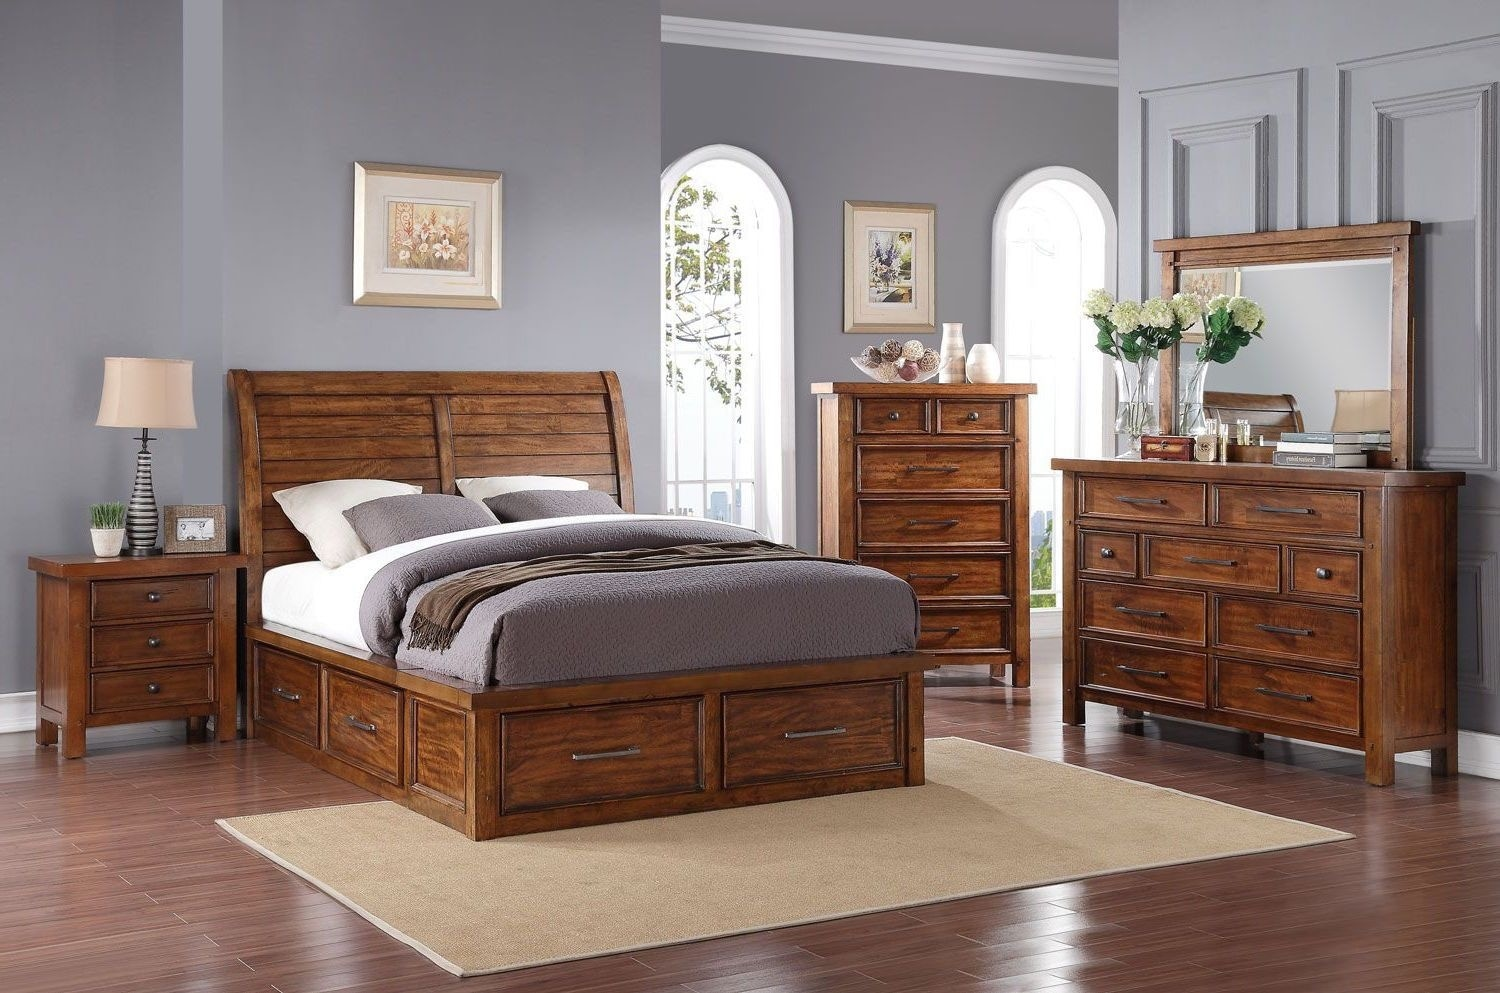 Sonoma 8-Piece Queen Storage Bedroom Package – Medium Brown